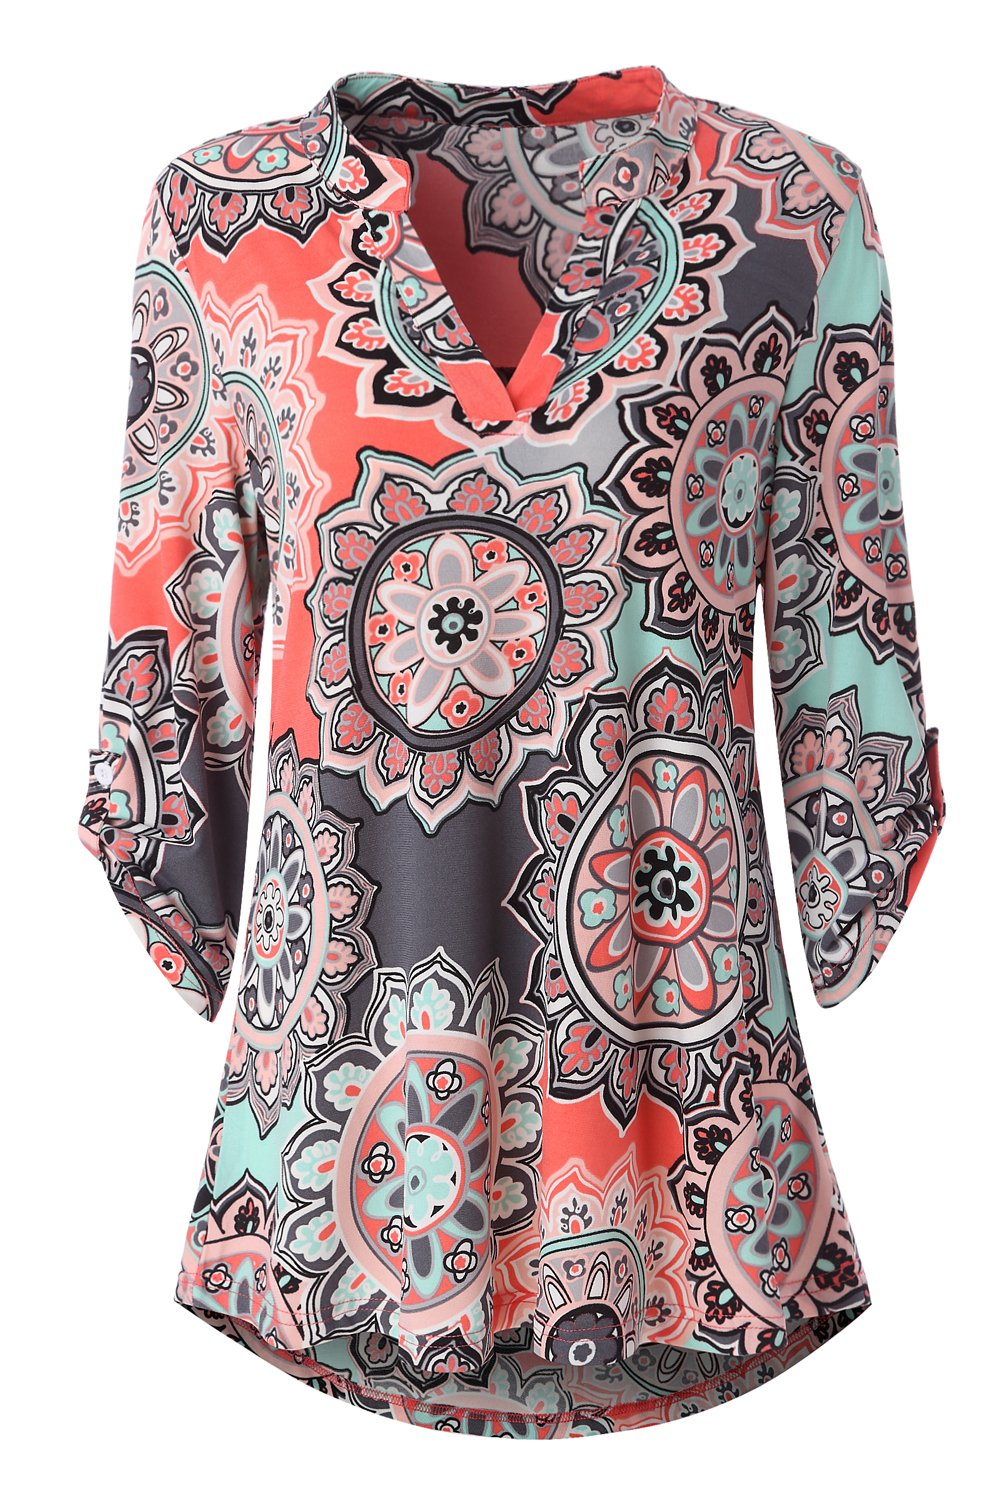 e1144c194a5 Galleon - Zattcas Womens Floral Printed Tunic Shirts 3 4 Roll Sleeve Notch  Neck Tunic Top (Small